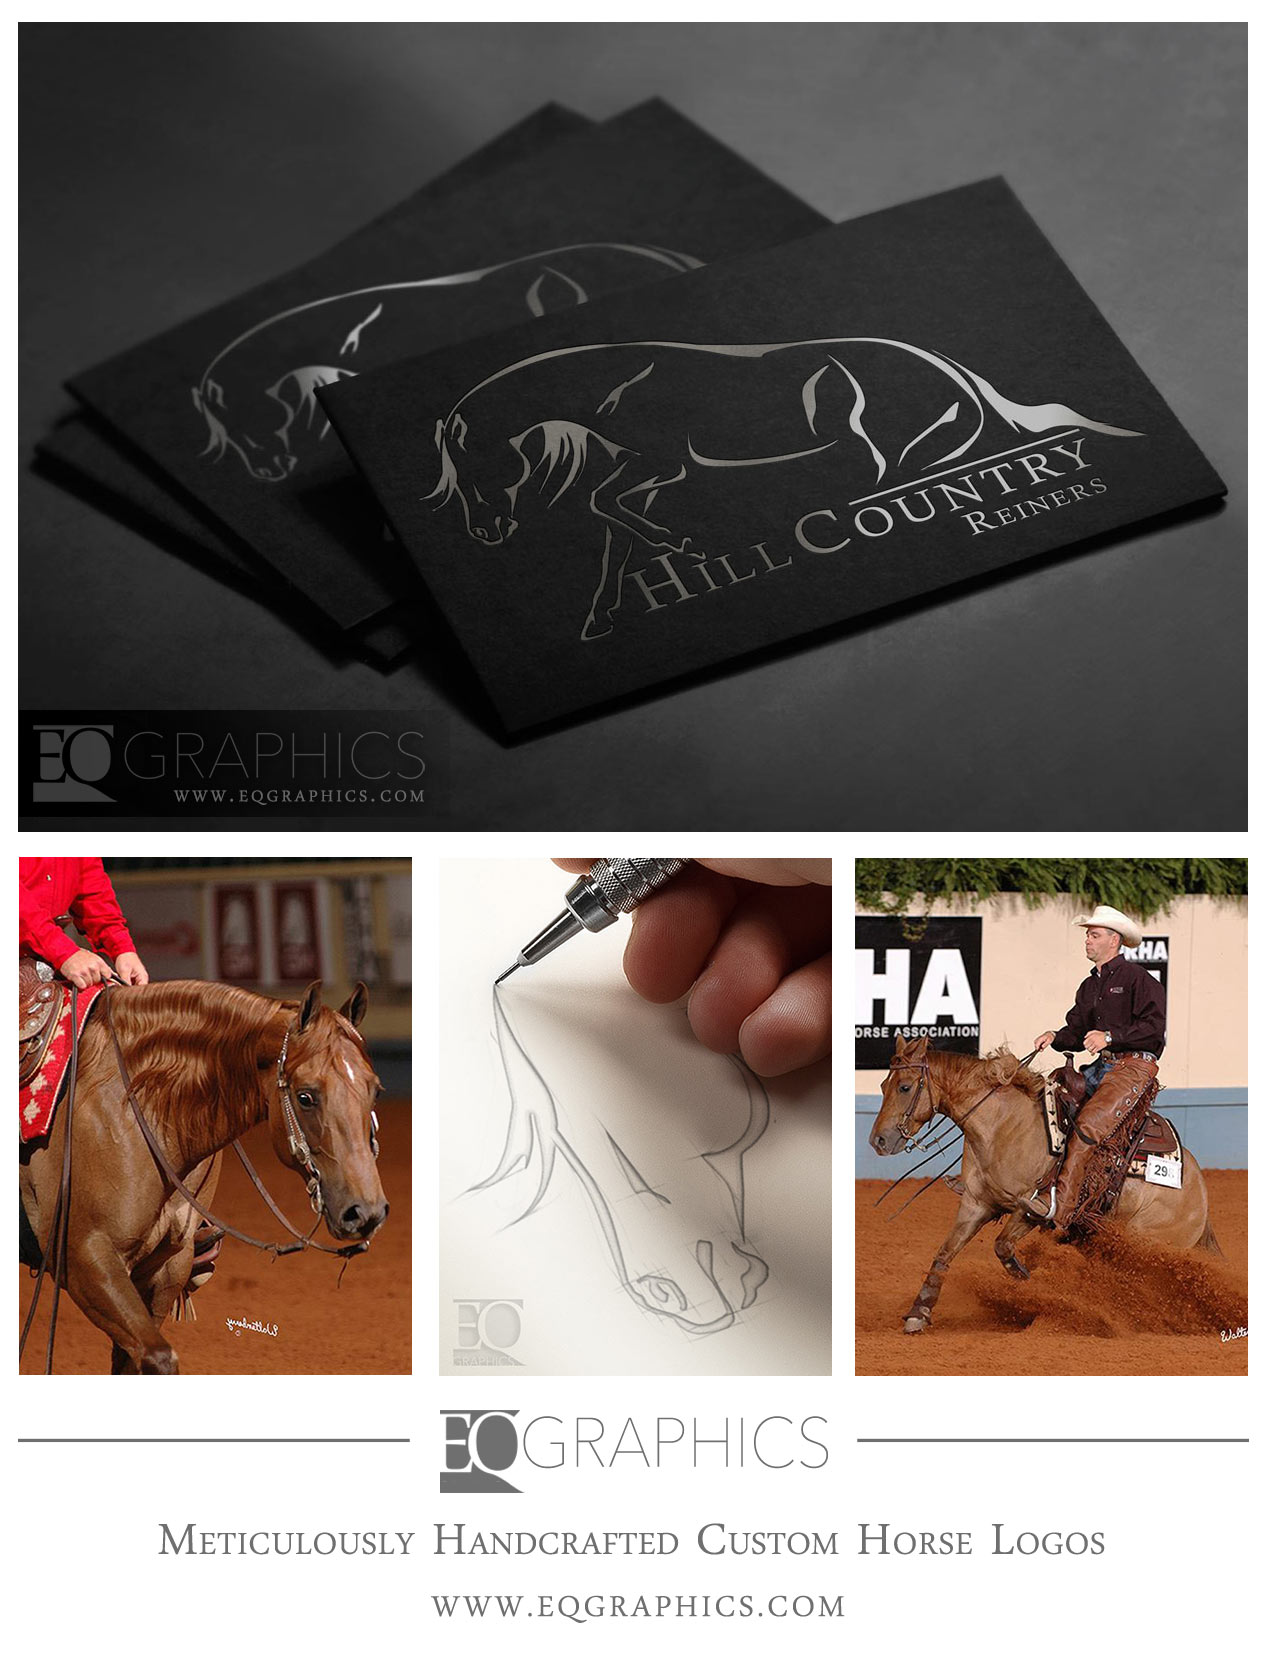 Hill Country Reiners Custom Hand-Drawn Horse Logo Design by EQ Graphics Equine Logos